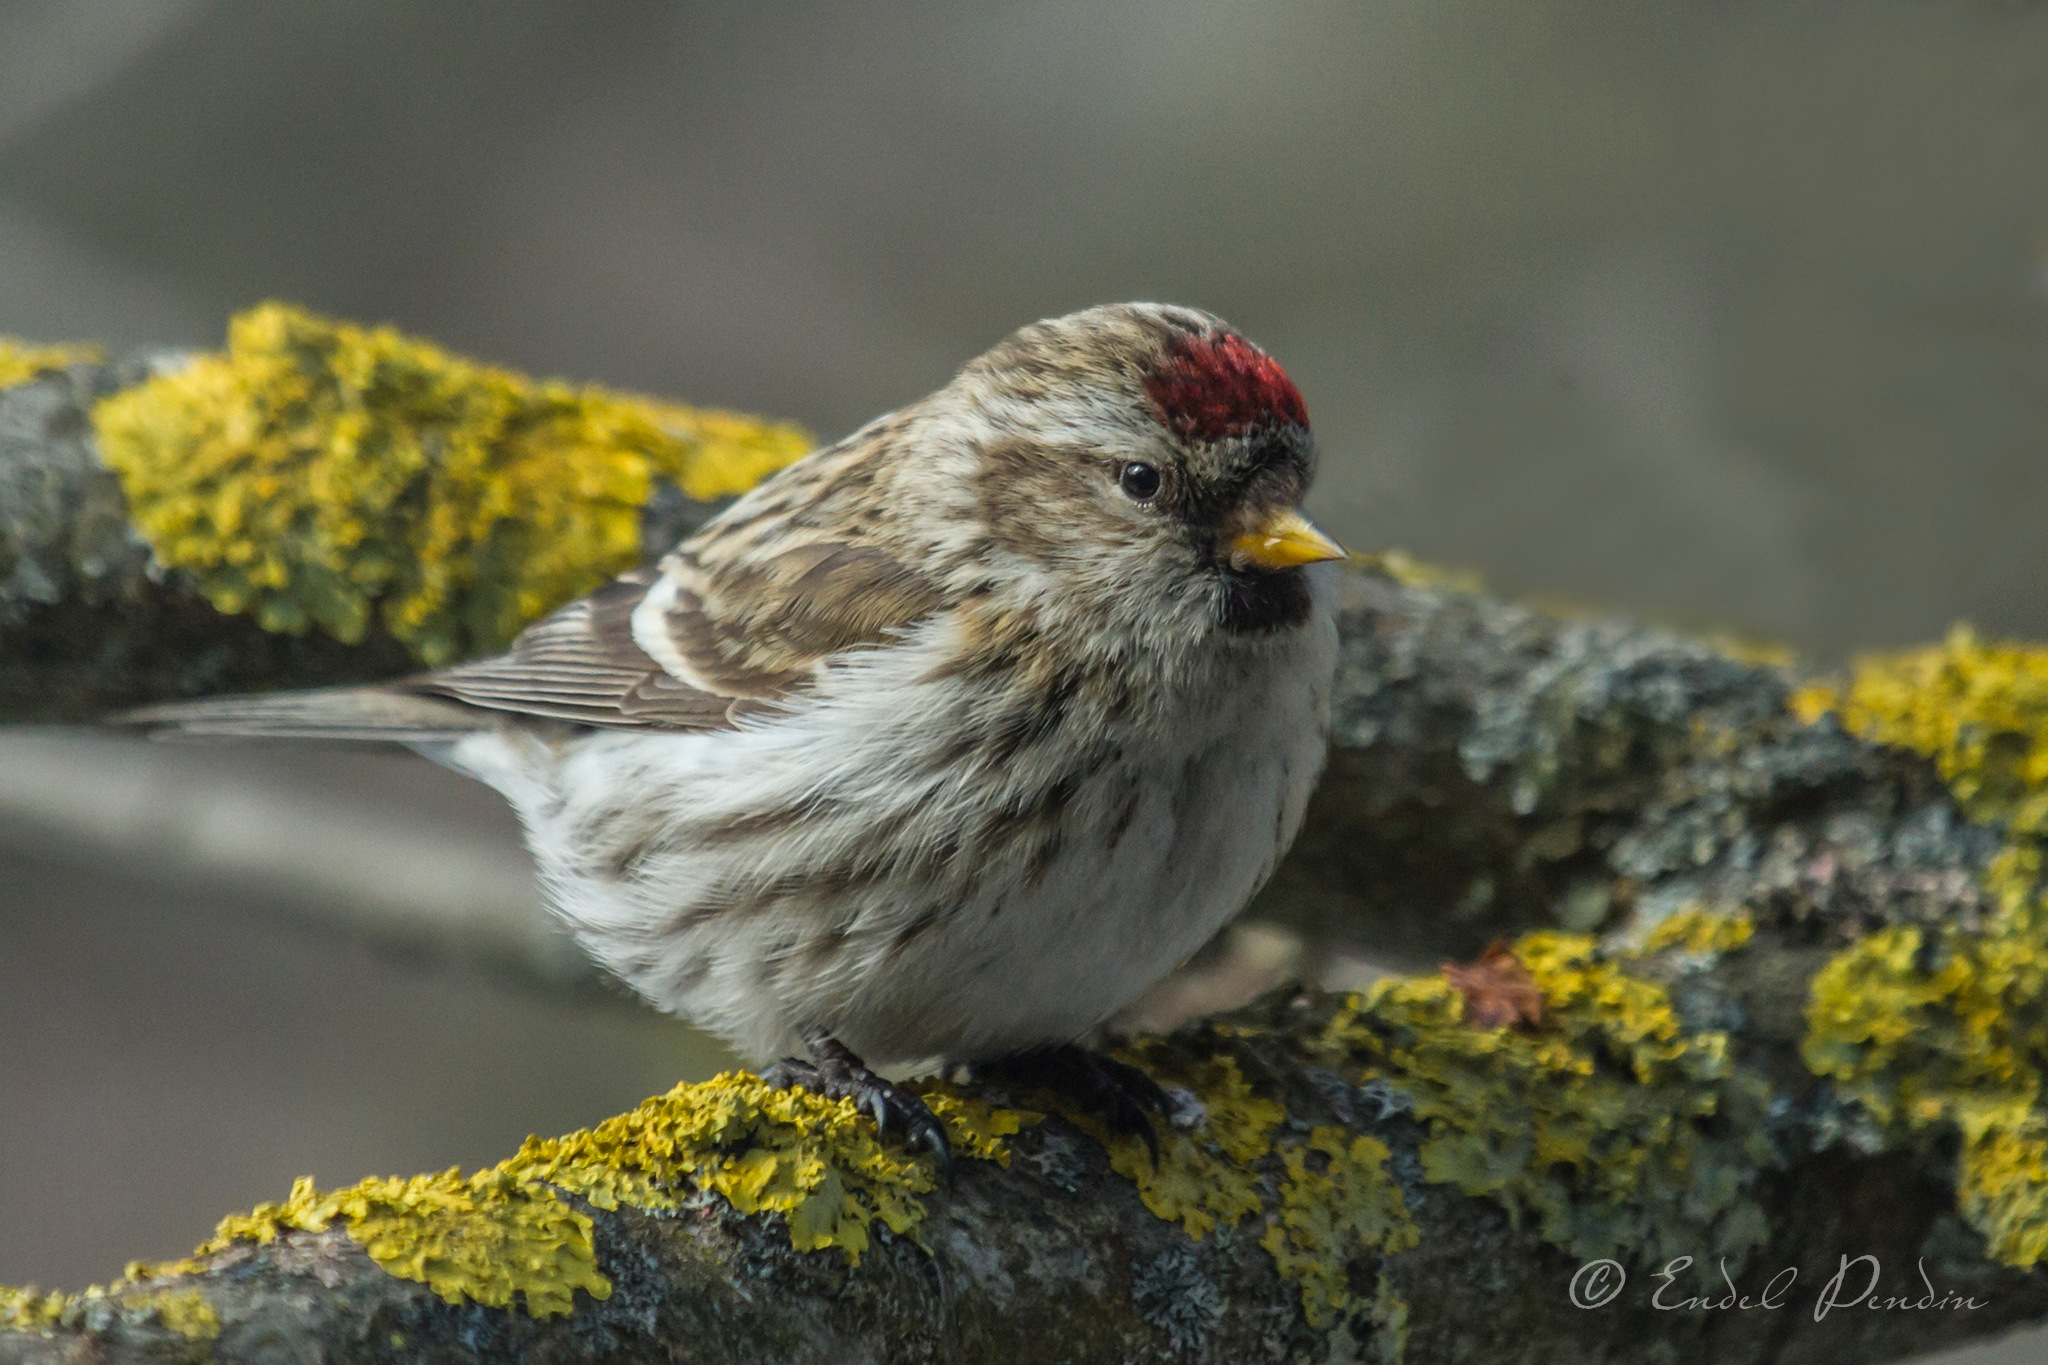 The common redpoll (Acanthis flammea) by sarvikpytt